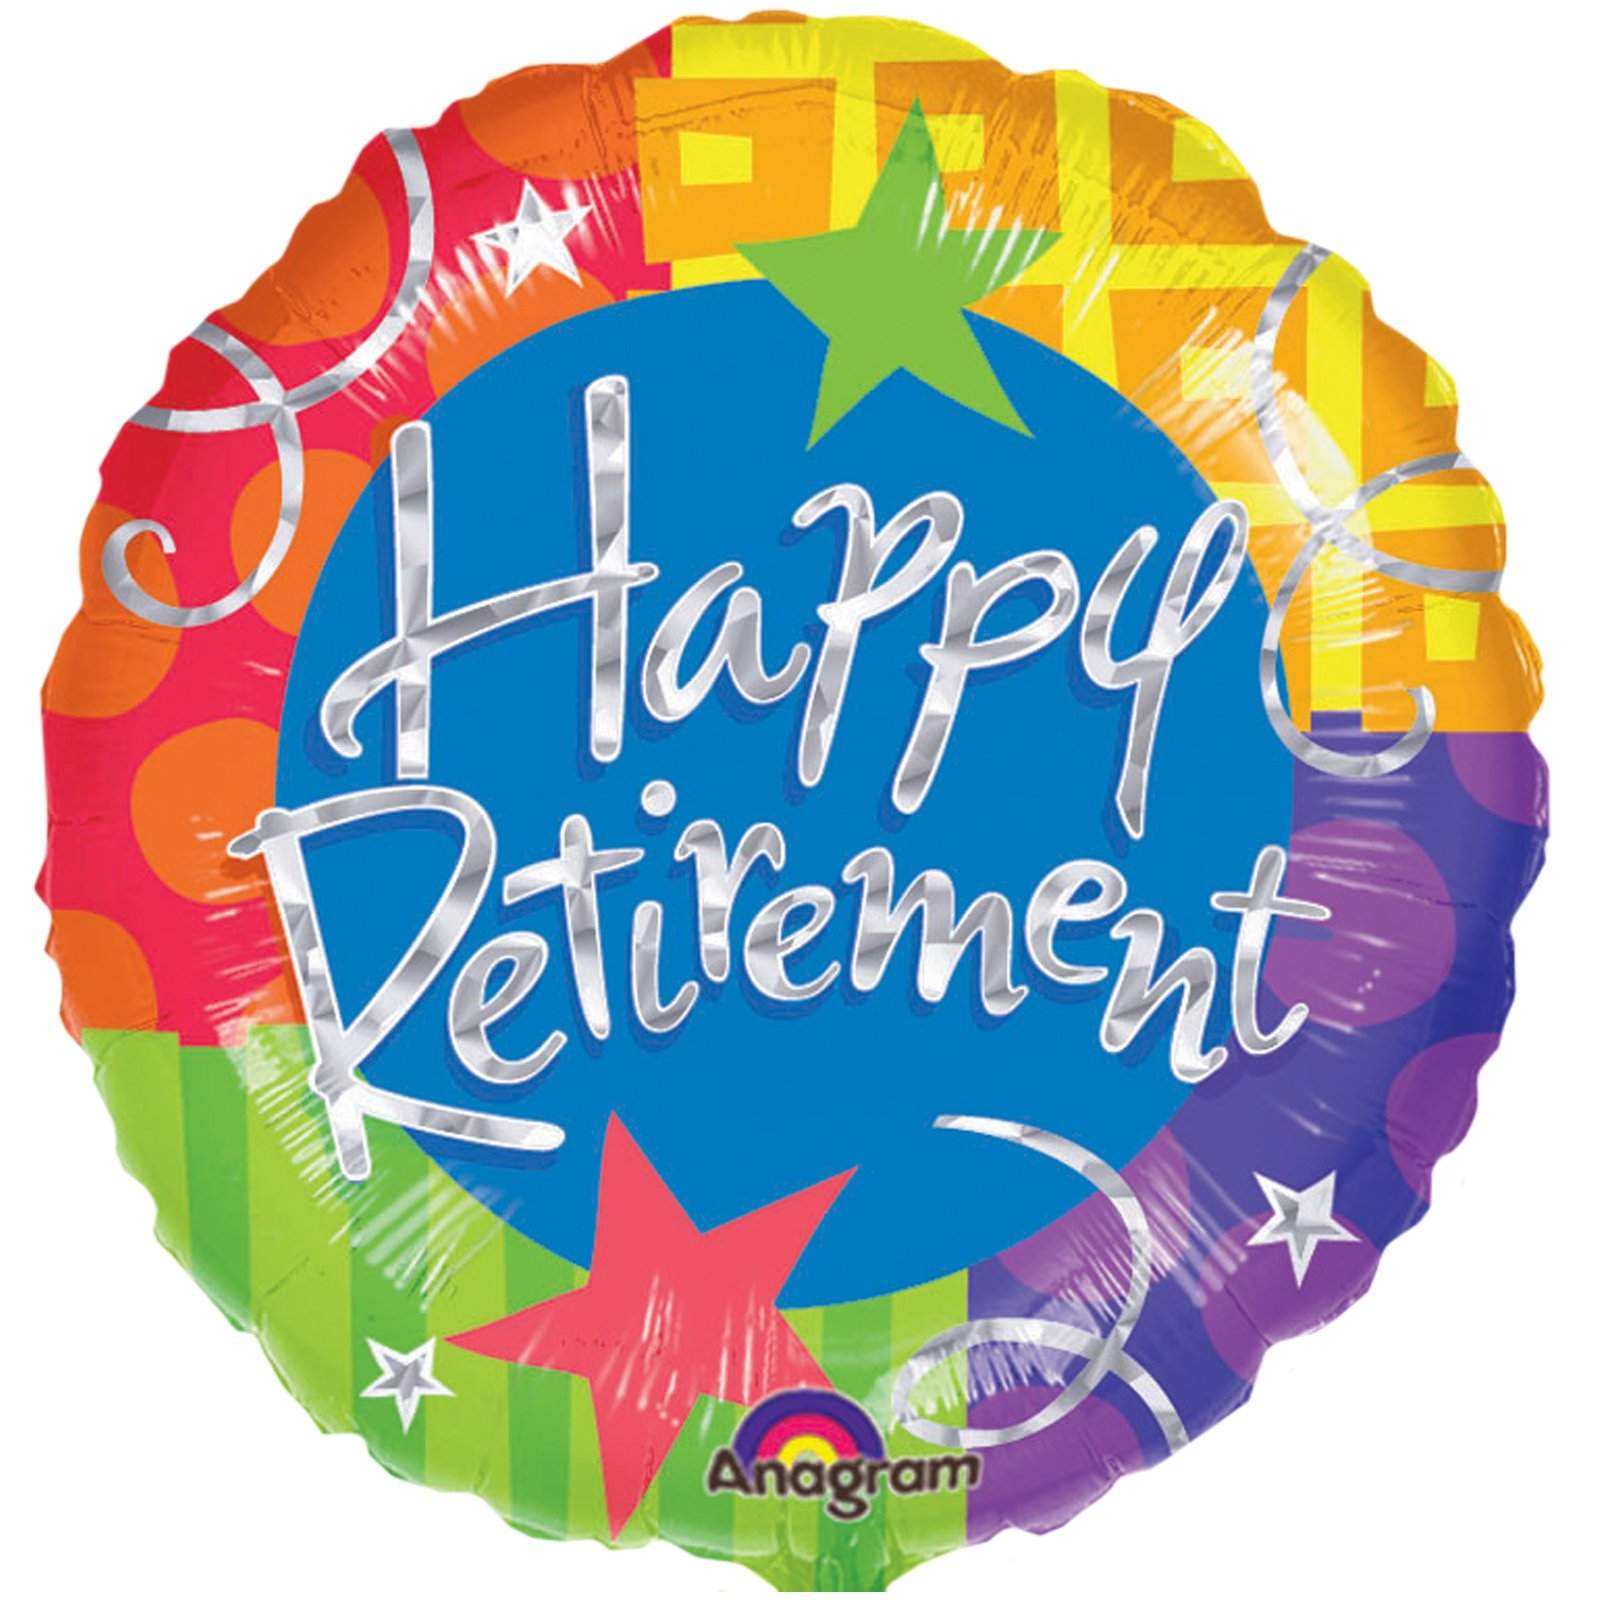 Retirement Wishes Clipart.